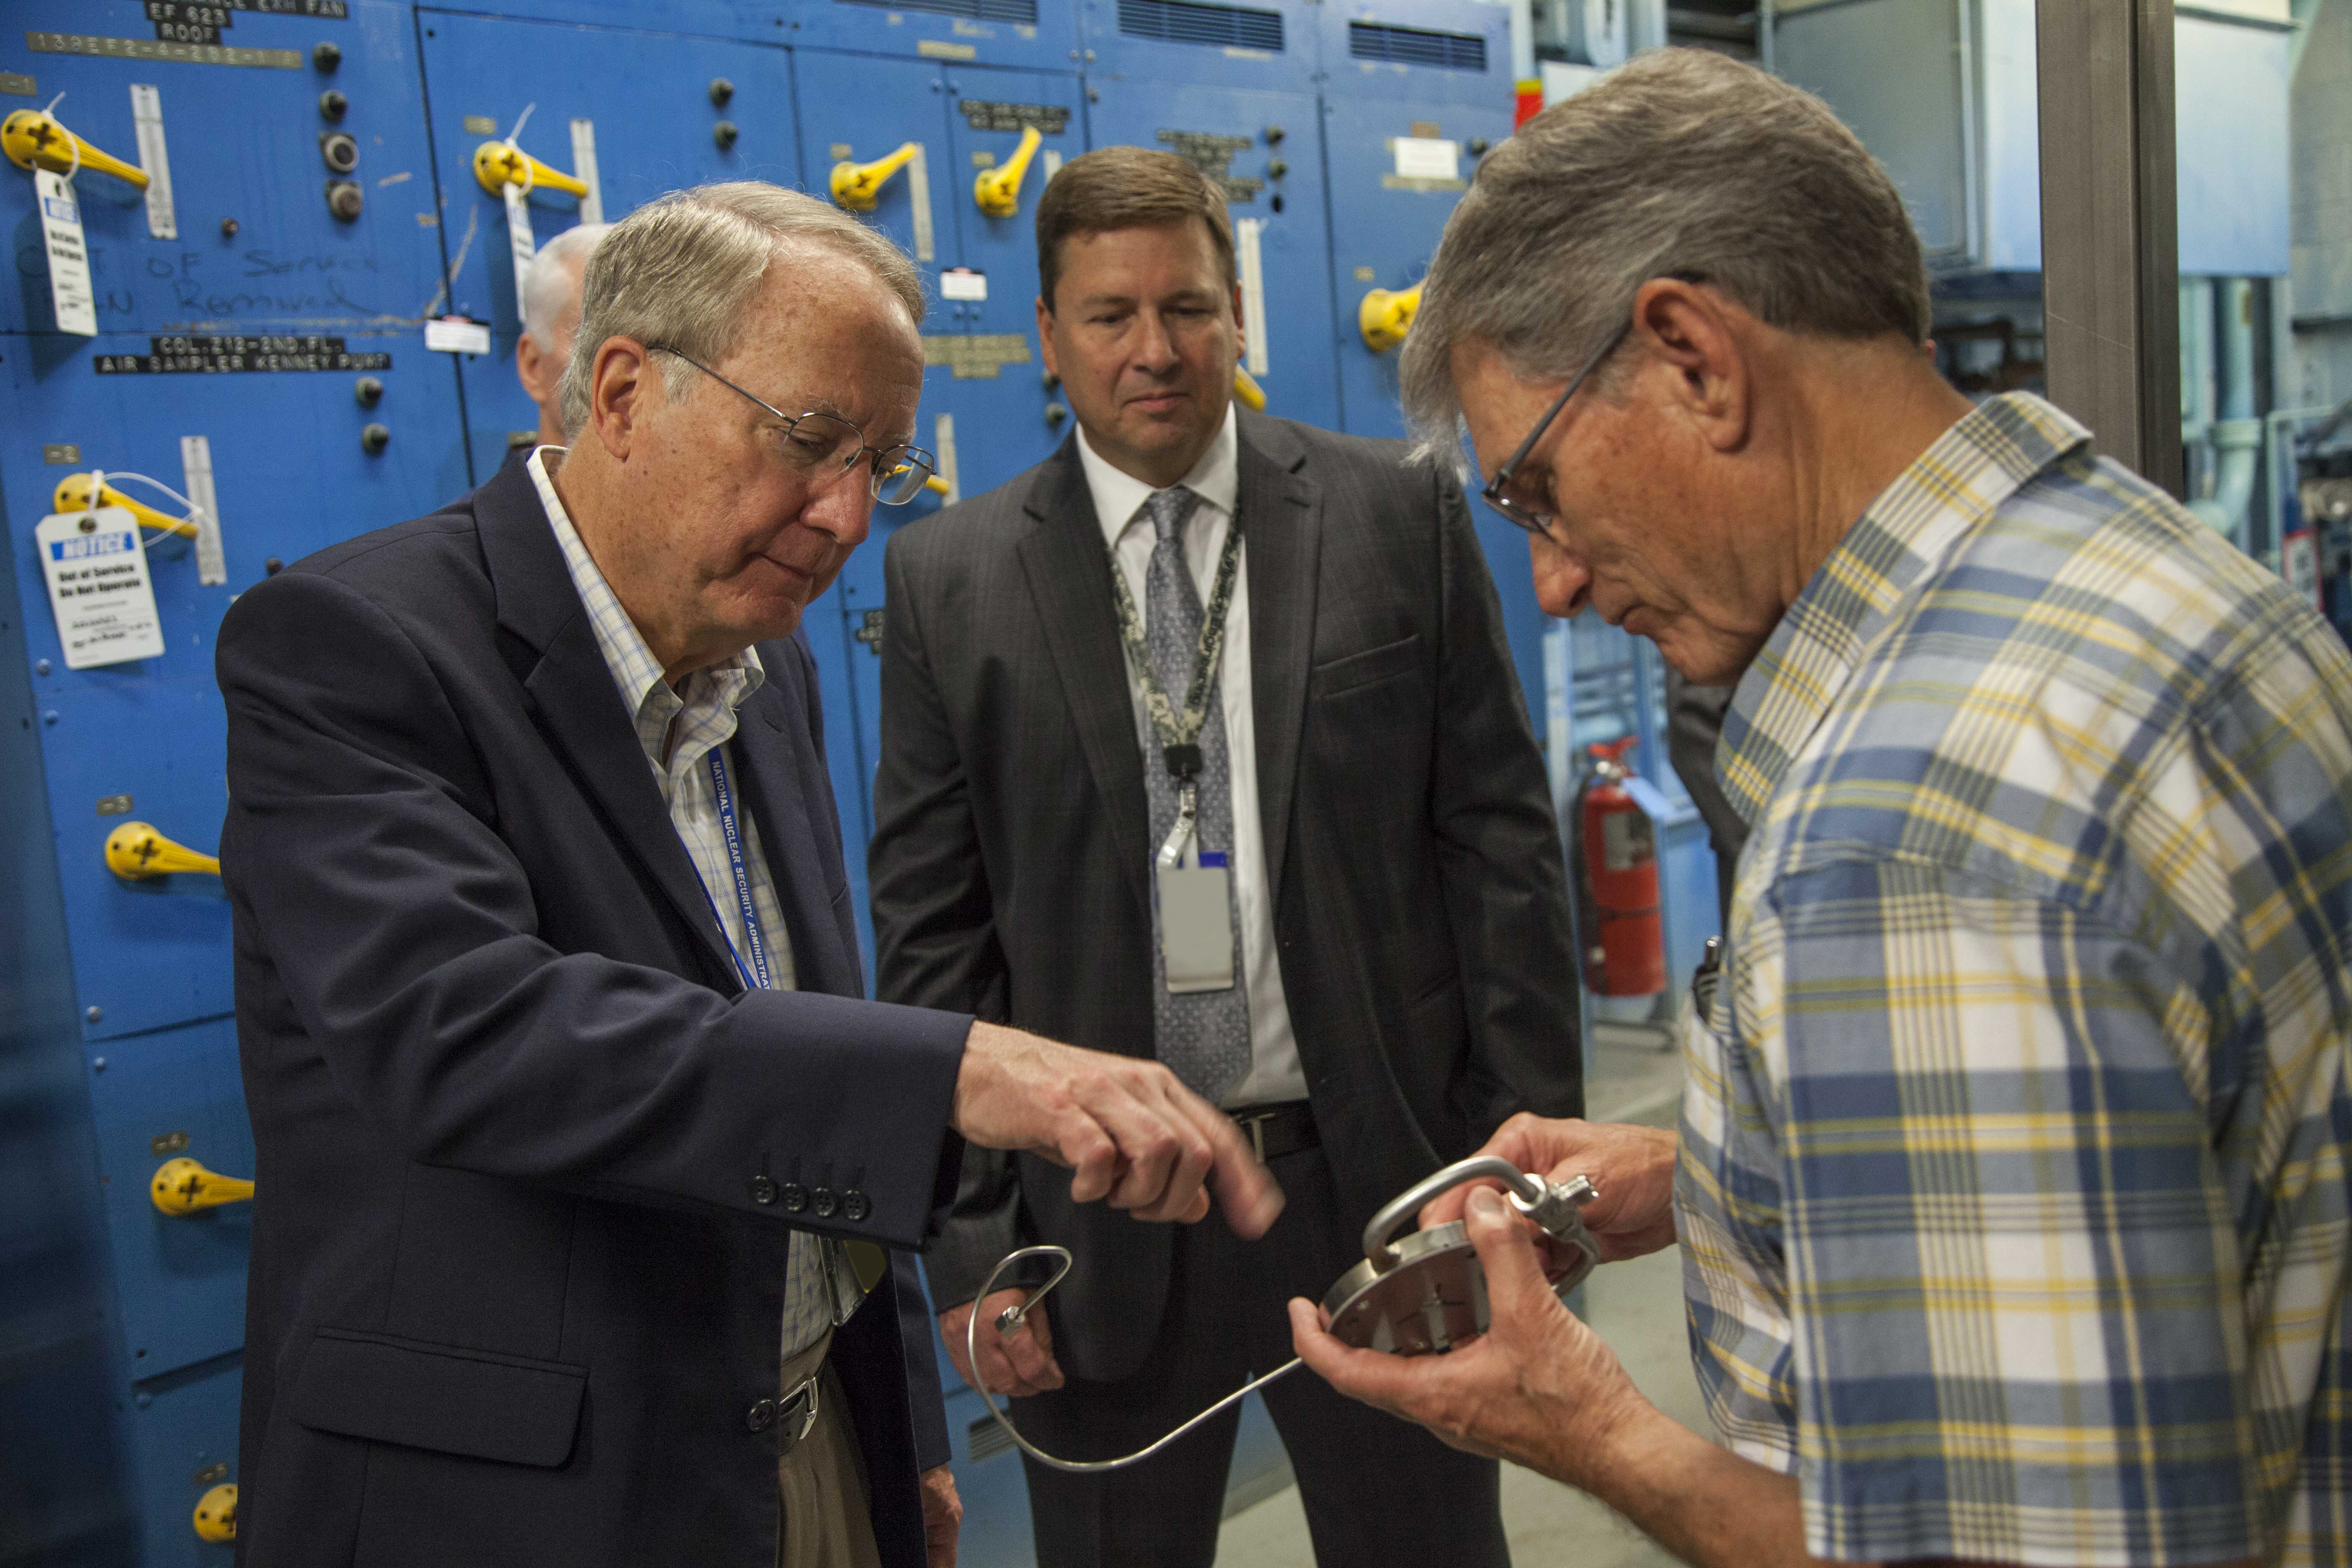 Team members are vital to keeping the U.S. ‪nuclear‬ deterrent safe, secure, and effective. Roland Seals, right, one of Y-12's inventors, describes a piece of instrumentation used in the site's R&D work to Klotz. Looking on is Randy Dziendziel, Y-12 Development manager.